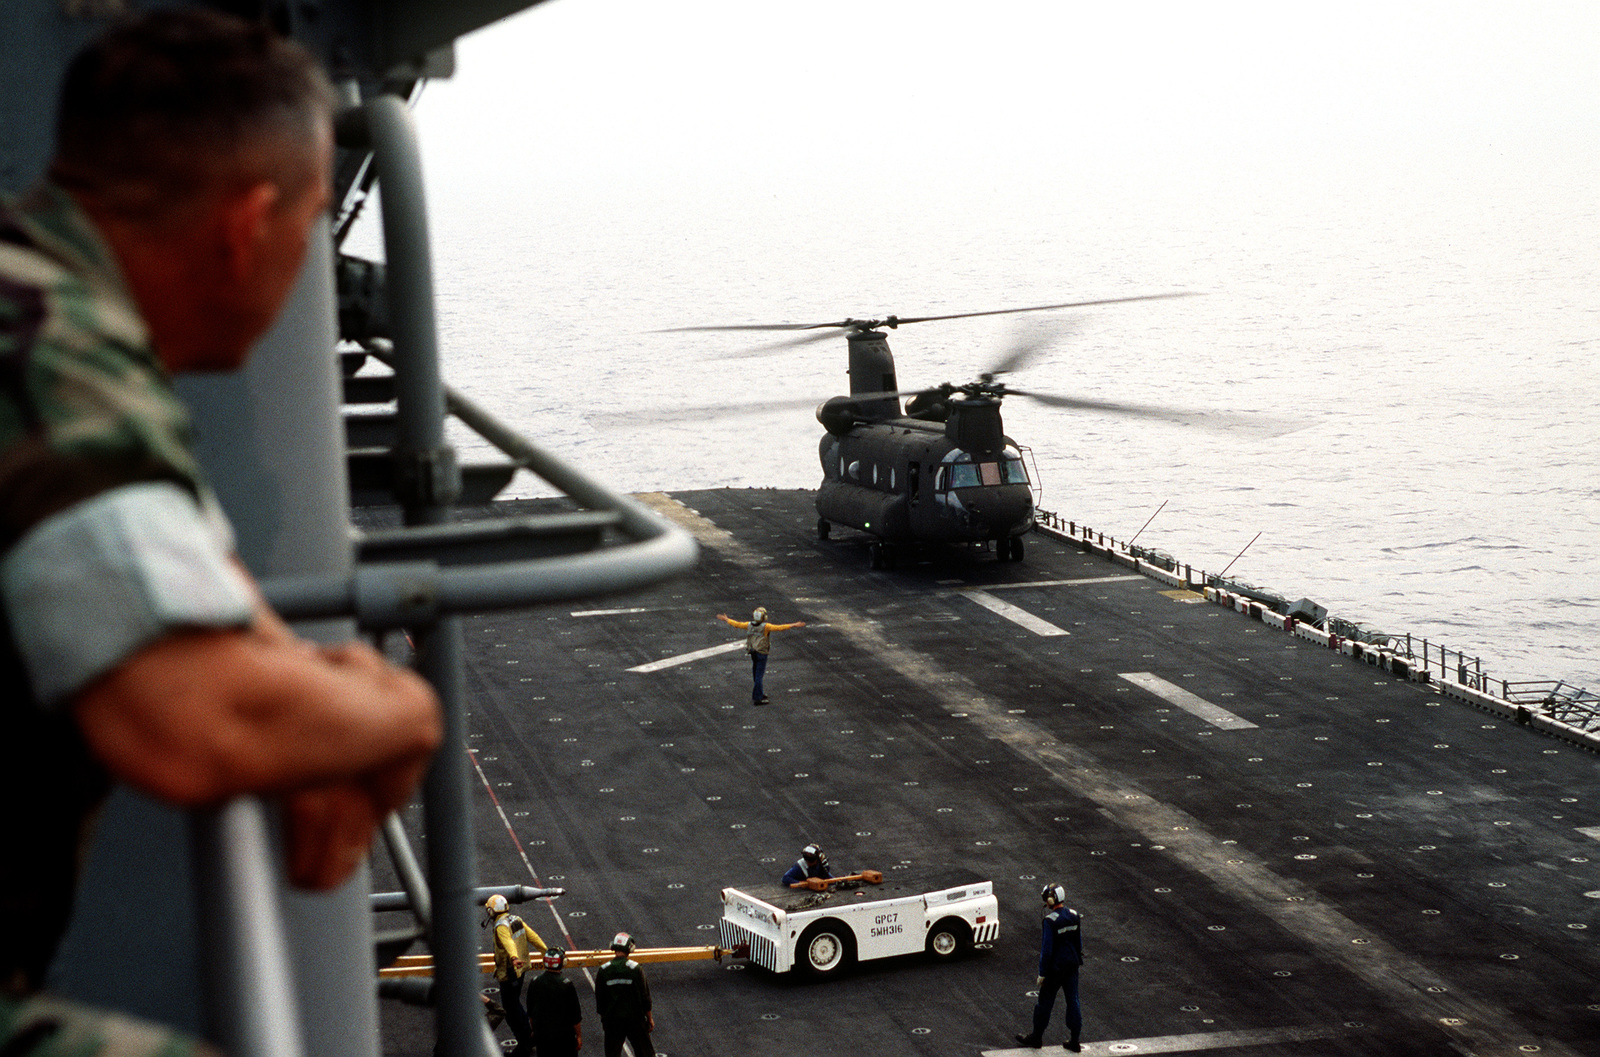 A US Army CH-47D Chinook helicopter lands on the flight deck for deck landing qualifications. The Army helicopter, from E Company, 502nd Aviation Regiment, Aviano, Italy, practices landings and take-offs from the deck of the amphibious assault ship as it operates off the coast of Italy